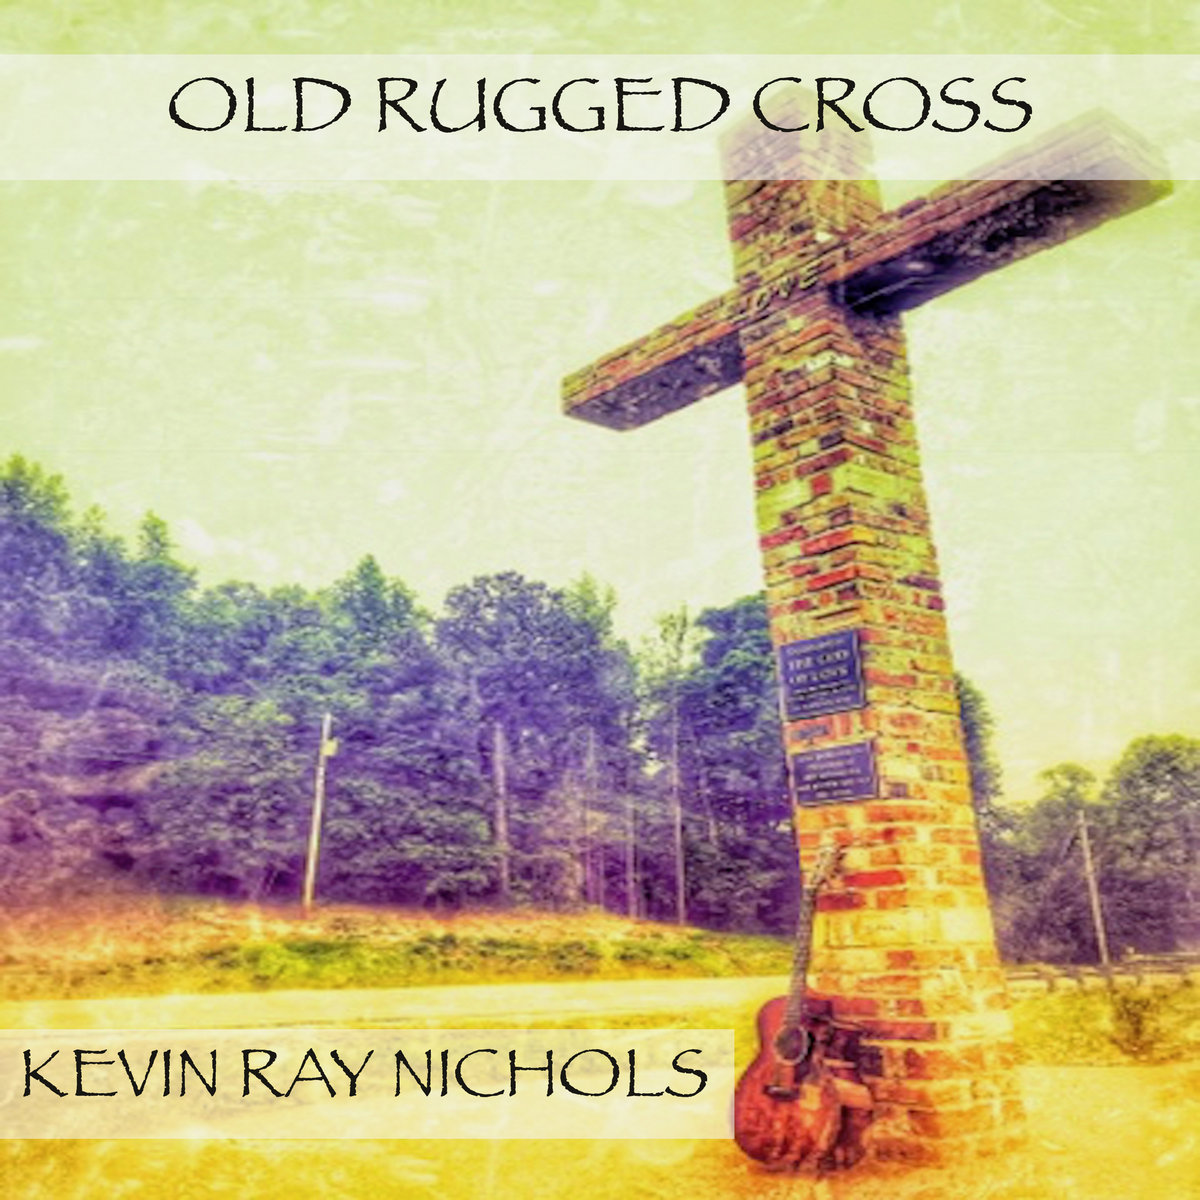 Old Rugged Cross by Kevin Ray Nichols